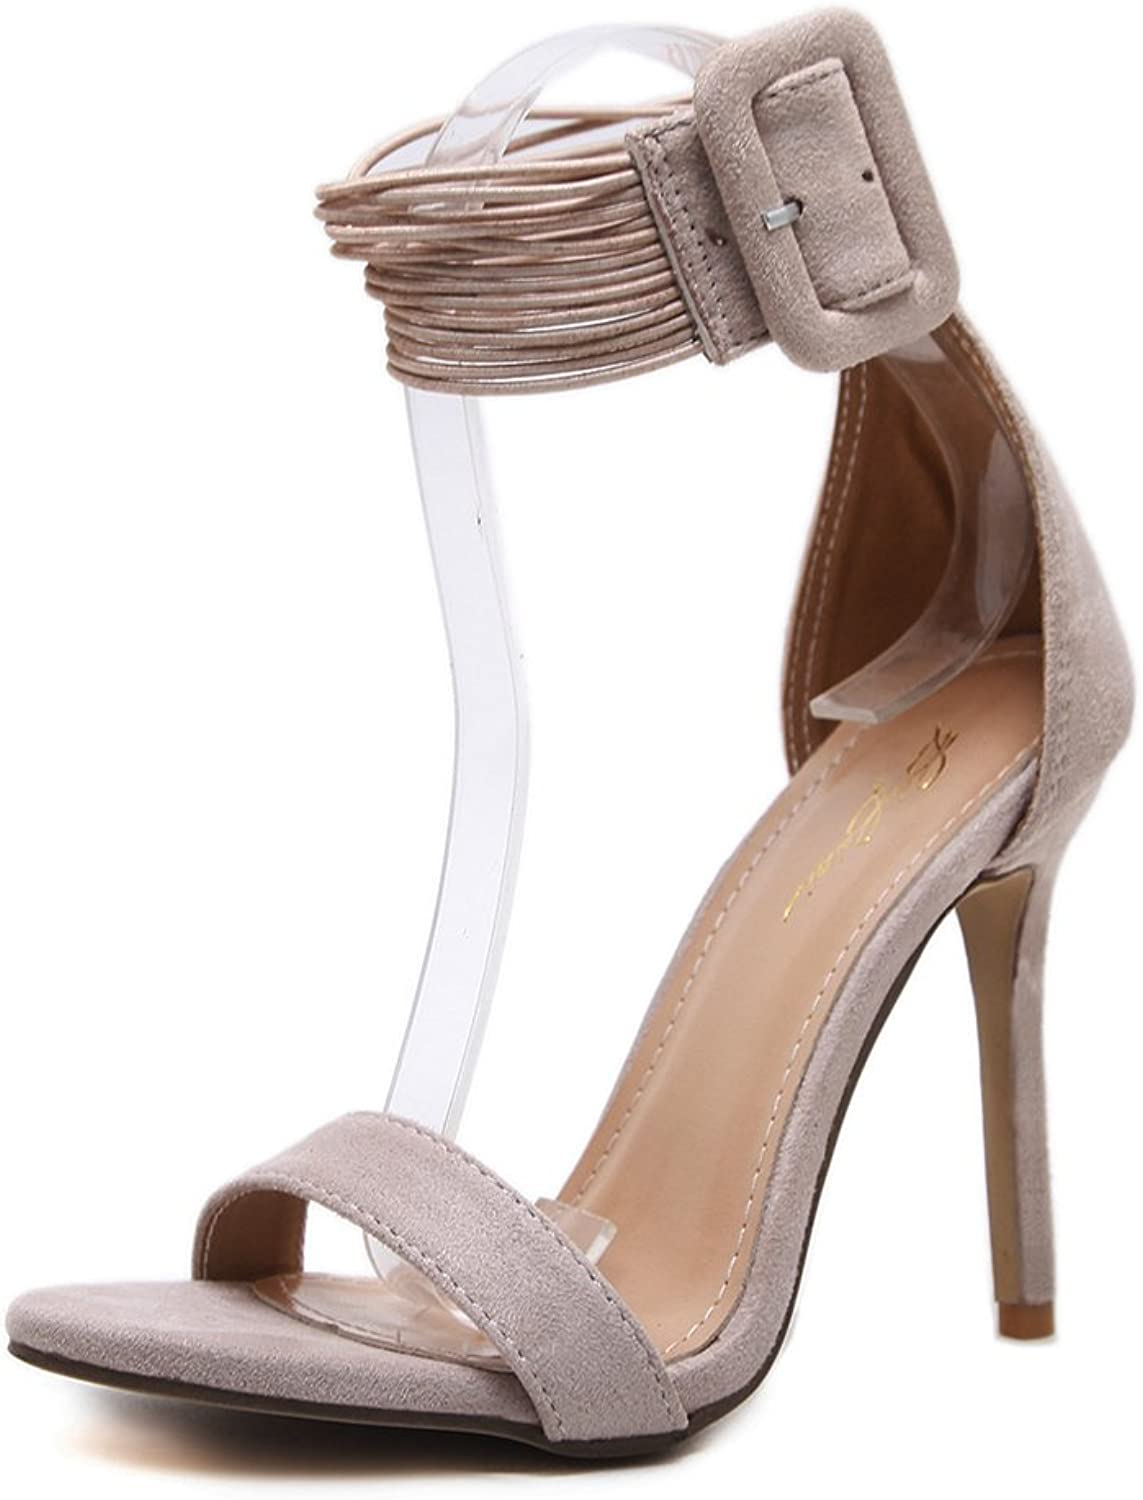 MIKA HOM Women Sandals High-Heeled Party Sandals Wedding Working shoes